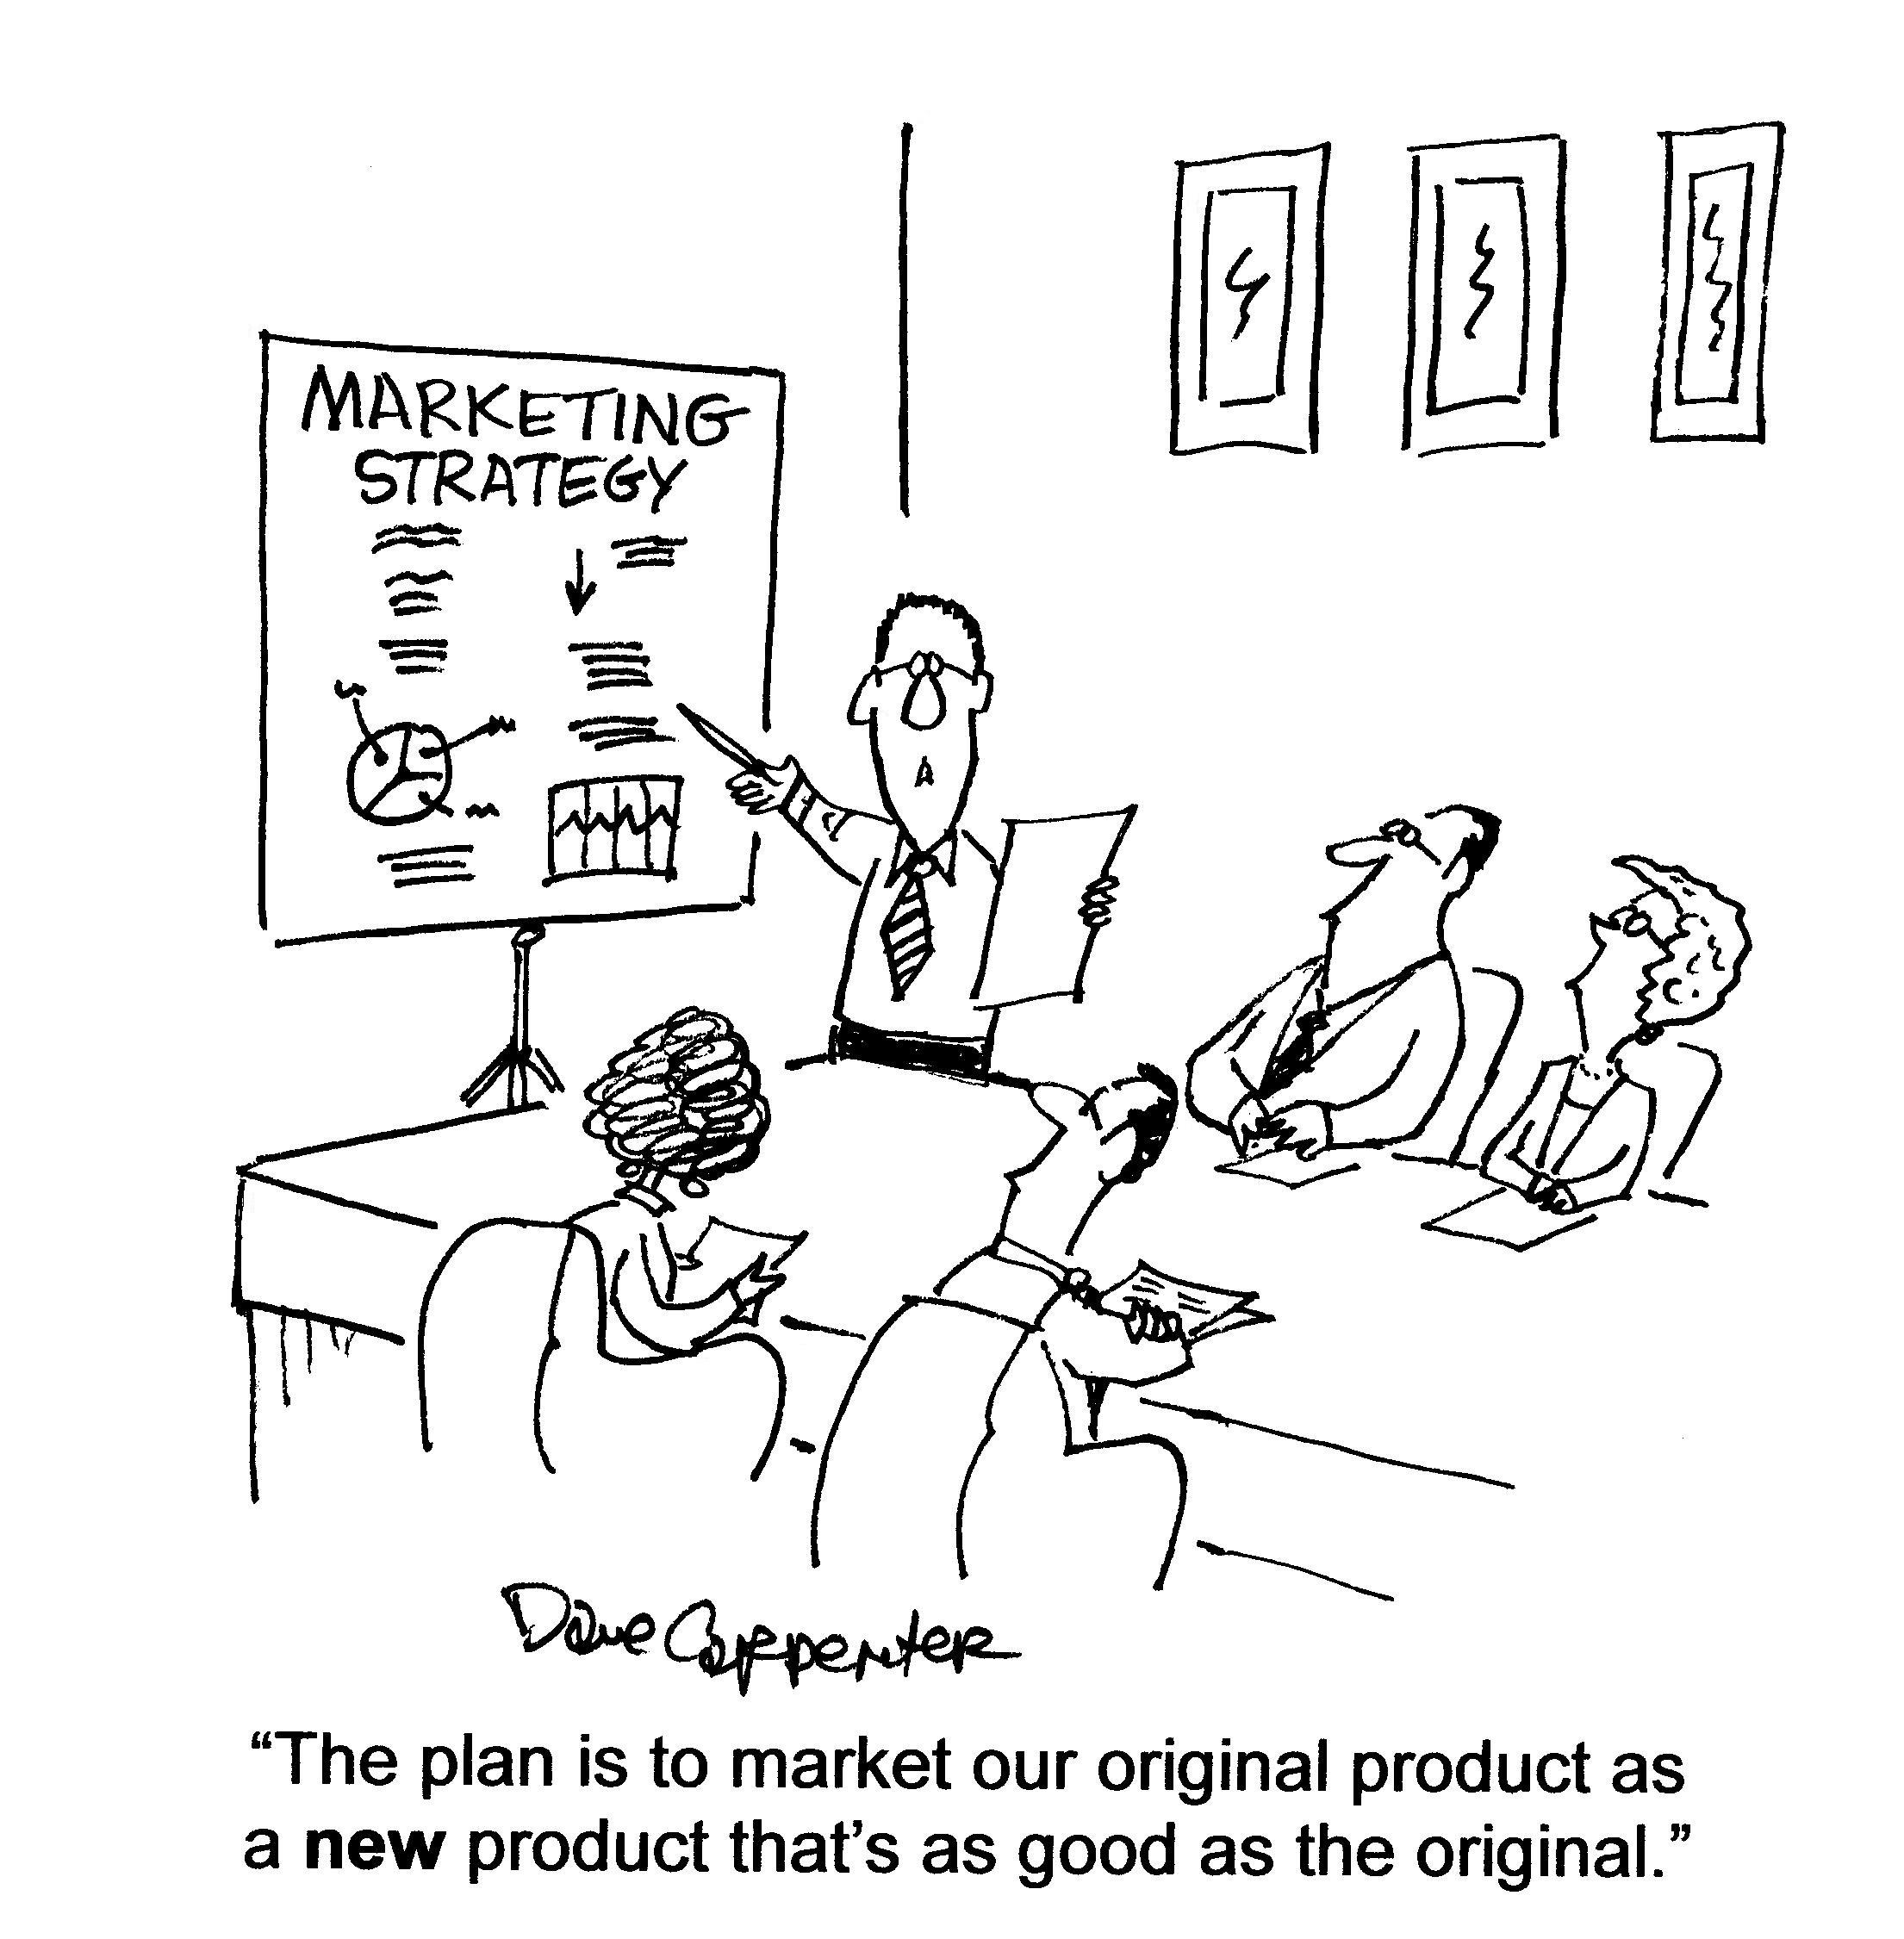 advertising services people love to buy but they hate to be sold 1950s Clothes marketing plan cartoon